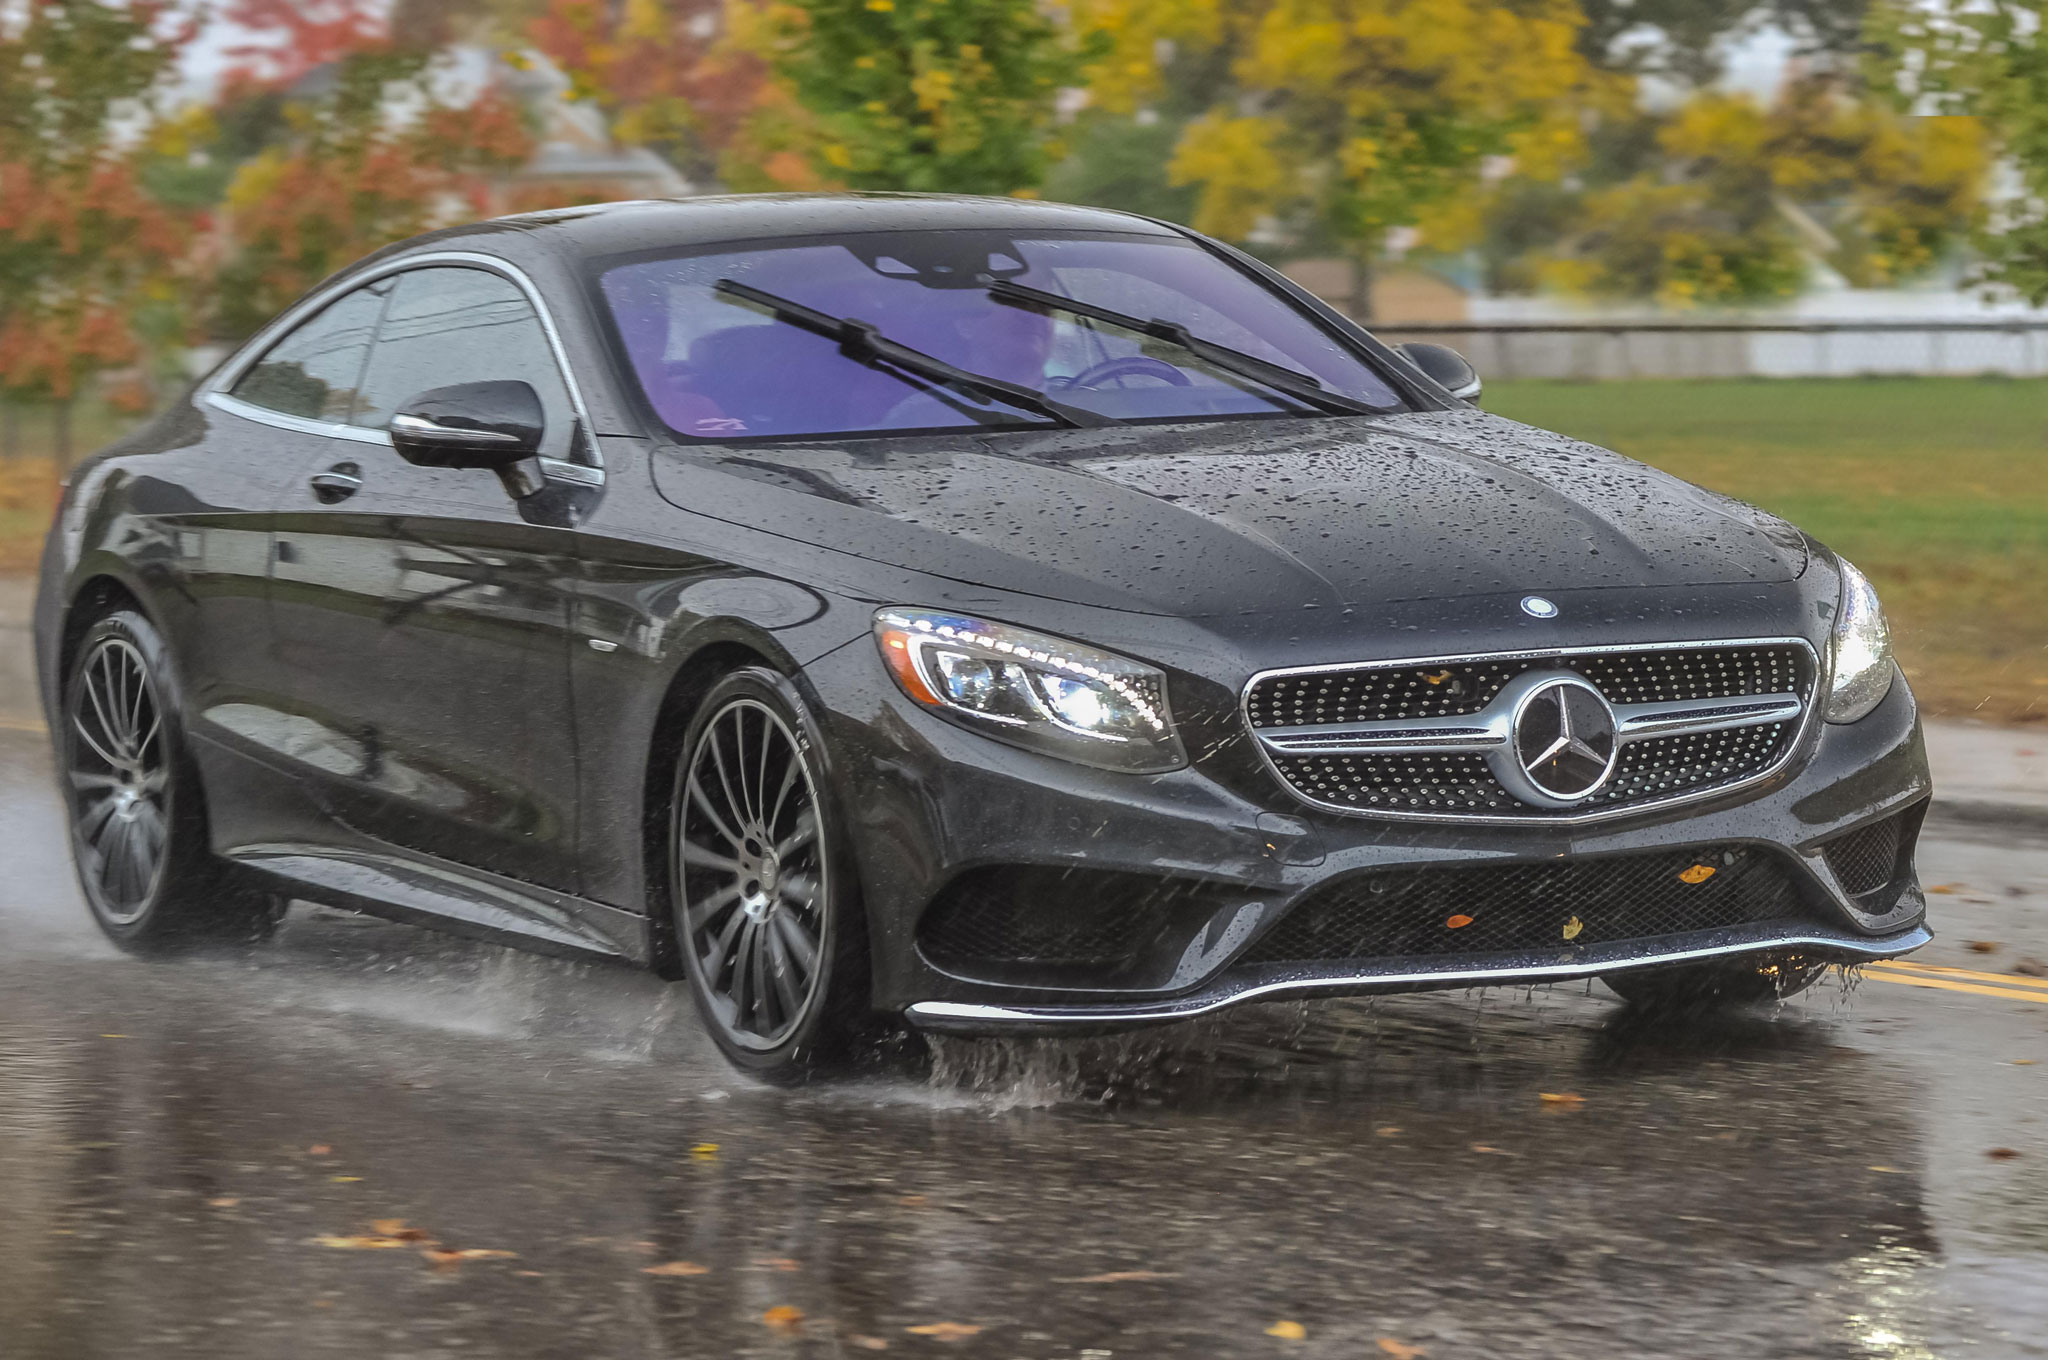 https://st.automobilemag.com/uploads/sites/11/2015/07/2015-Mercedes-Benz-S550-coupe-in-motion-through-rain.jpg